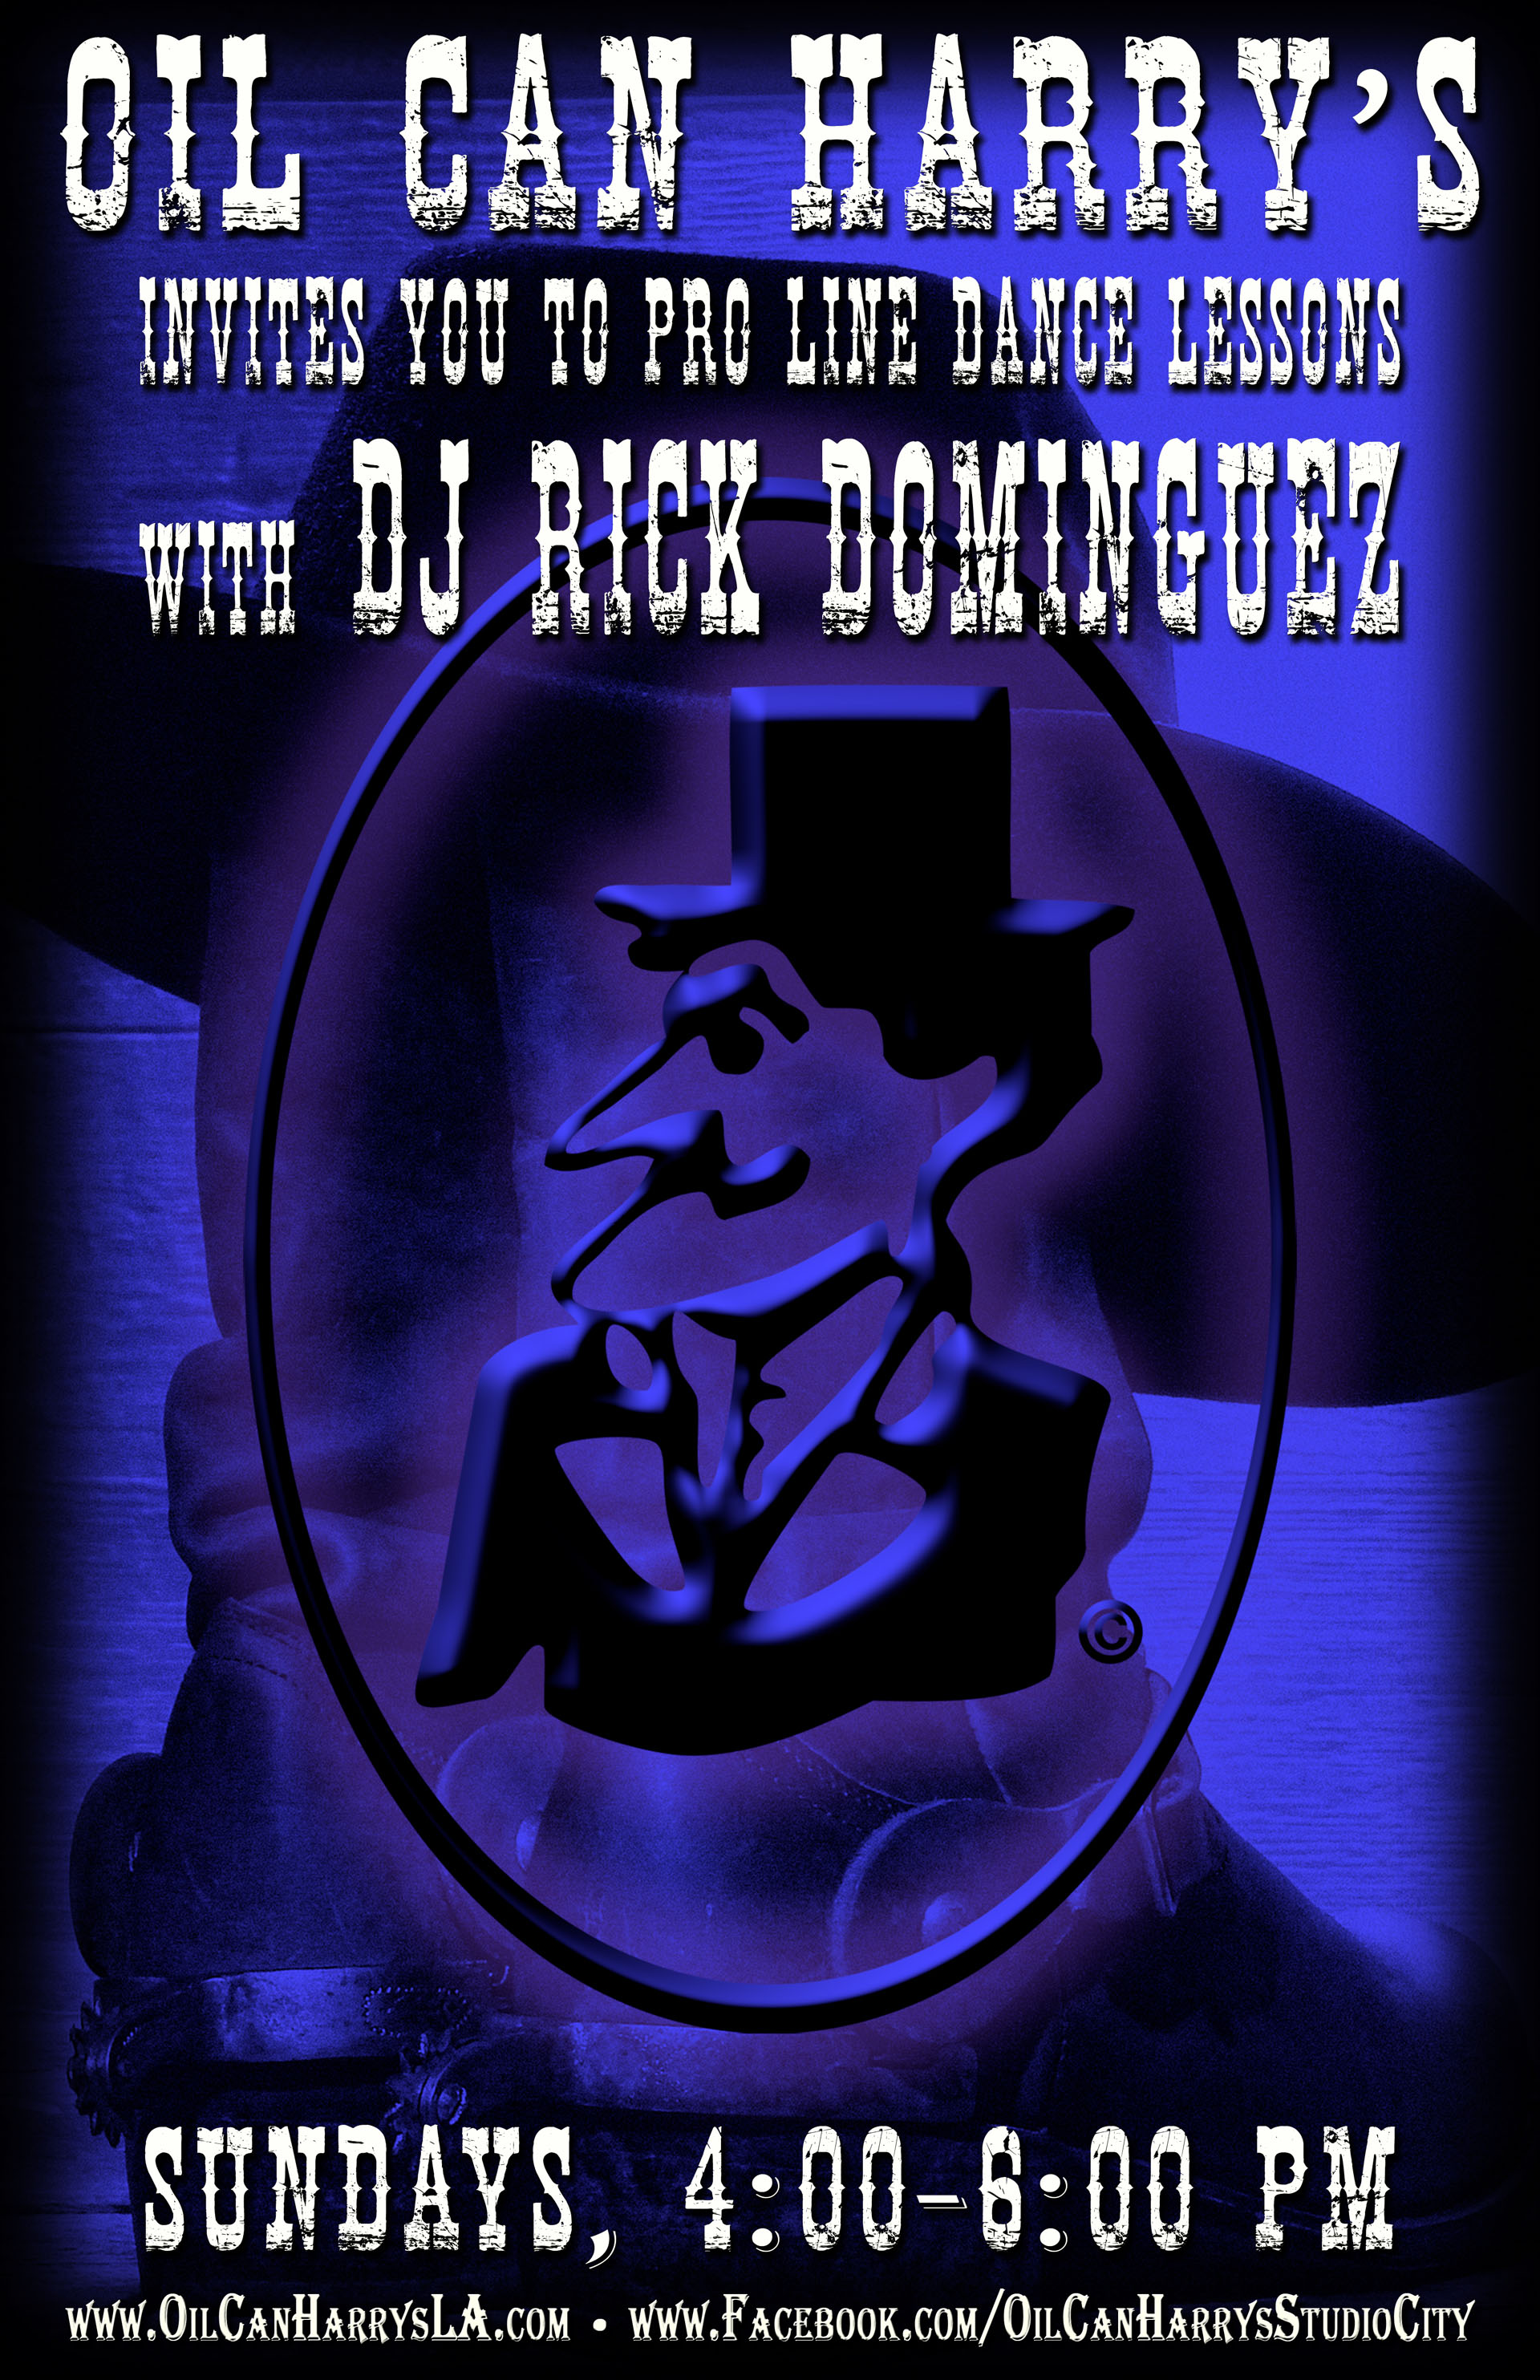 Oil Can Harry's invites you to Pro Line Dance Lessons with DJ RICK DOMINGUEZ! Sundays from 4:00-6:00 PM.